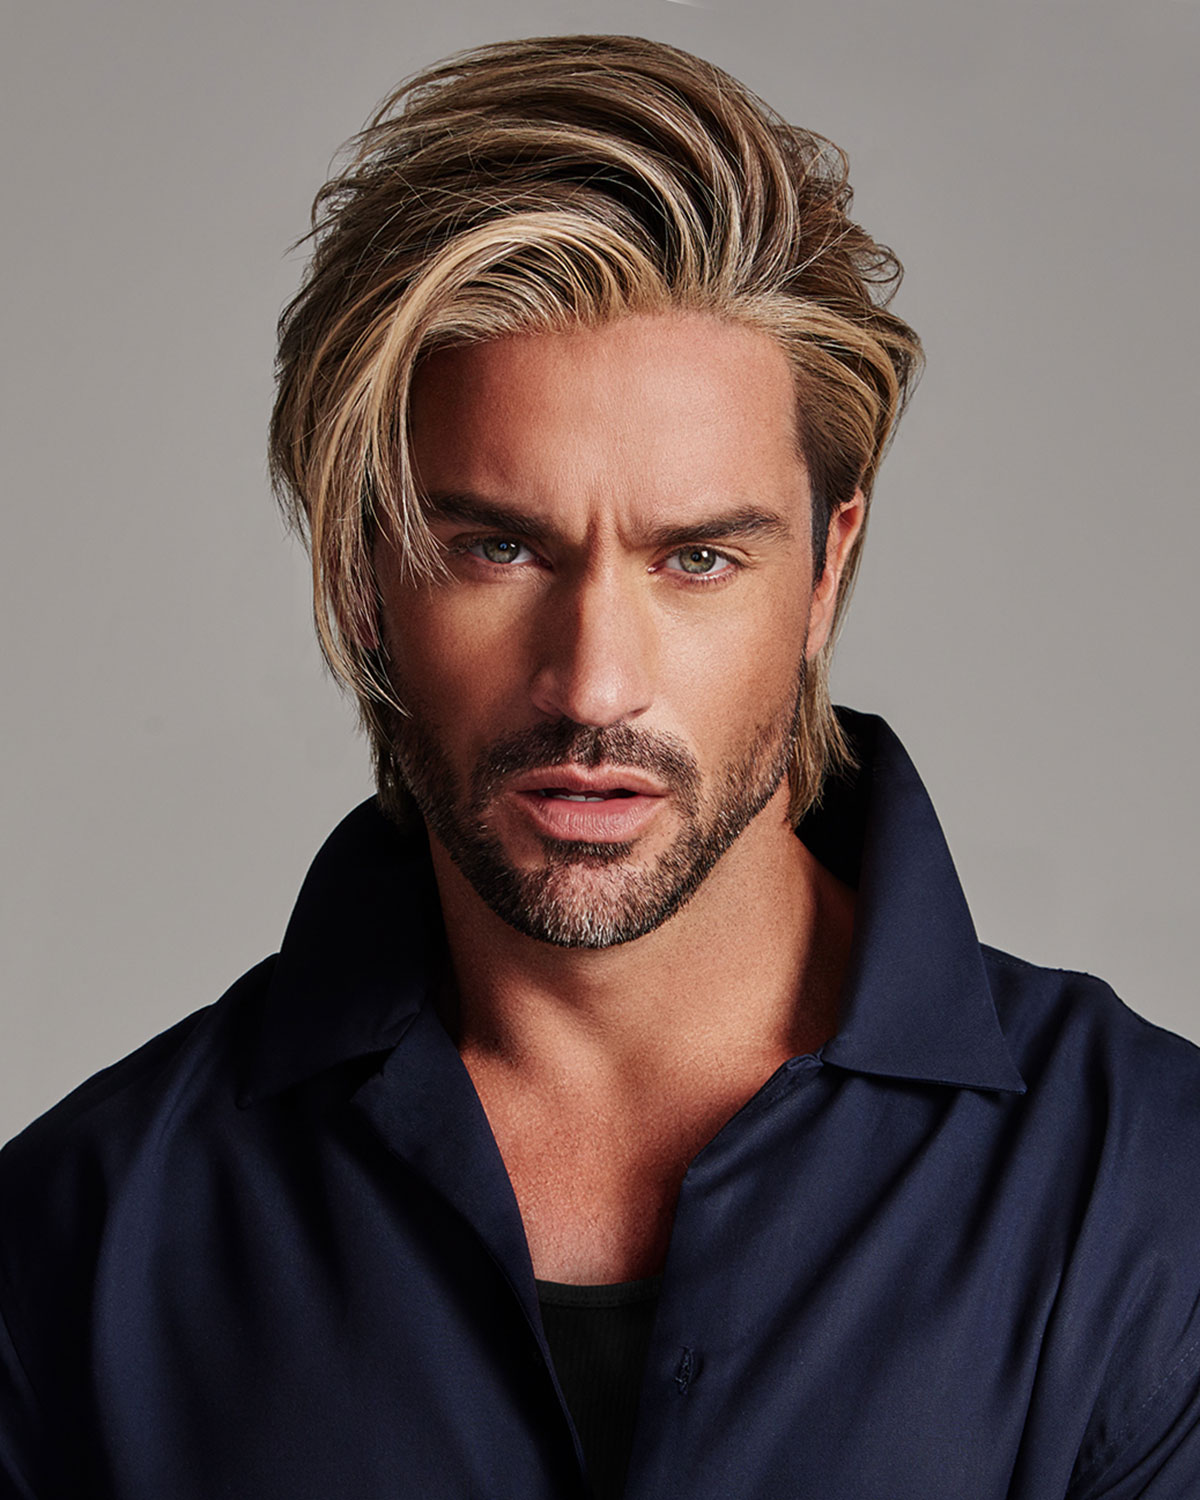 Daring Average Large Men s Lace Front   Monofilament Part Synthetic Wig by  HIM. Home · Wigs · Men s 14a88642f